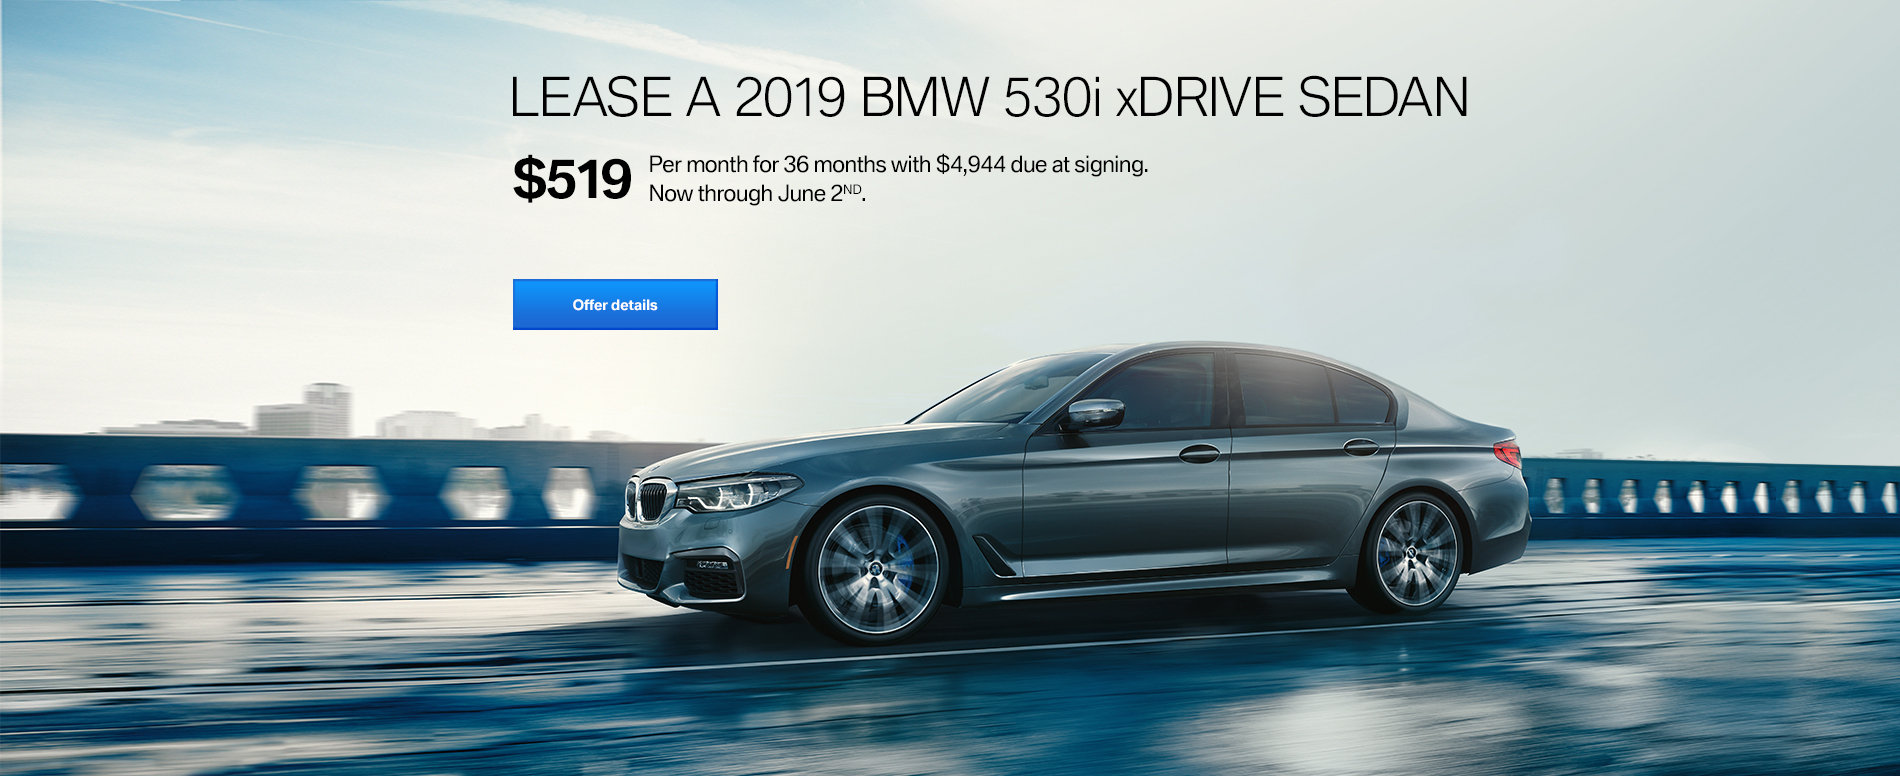 BMW 530i xDRIVE FOR $519 MONTH